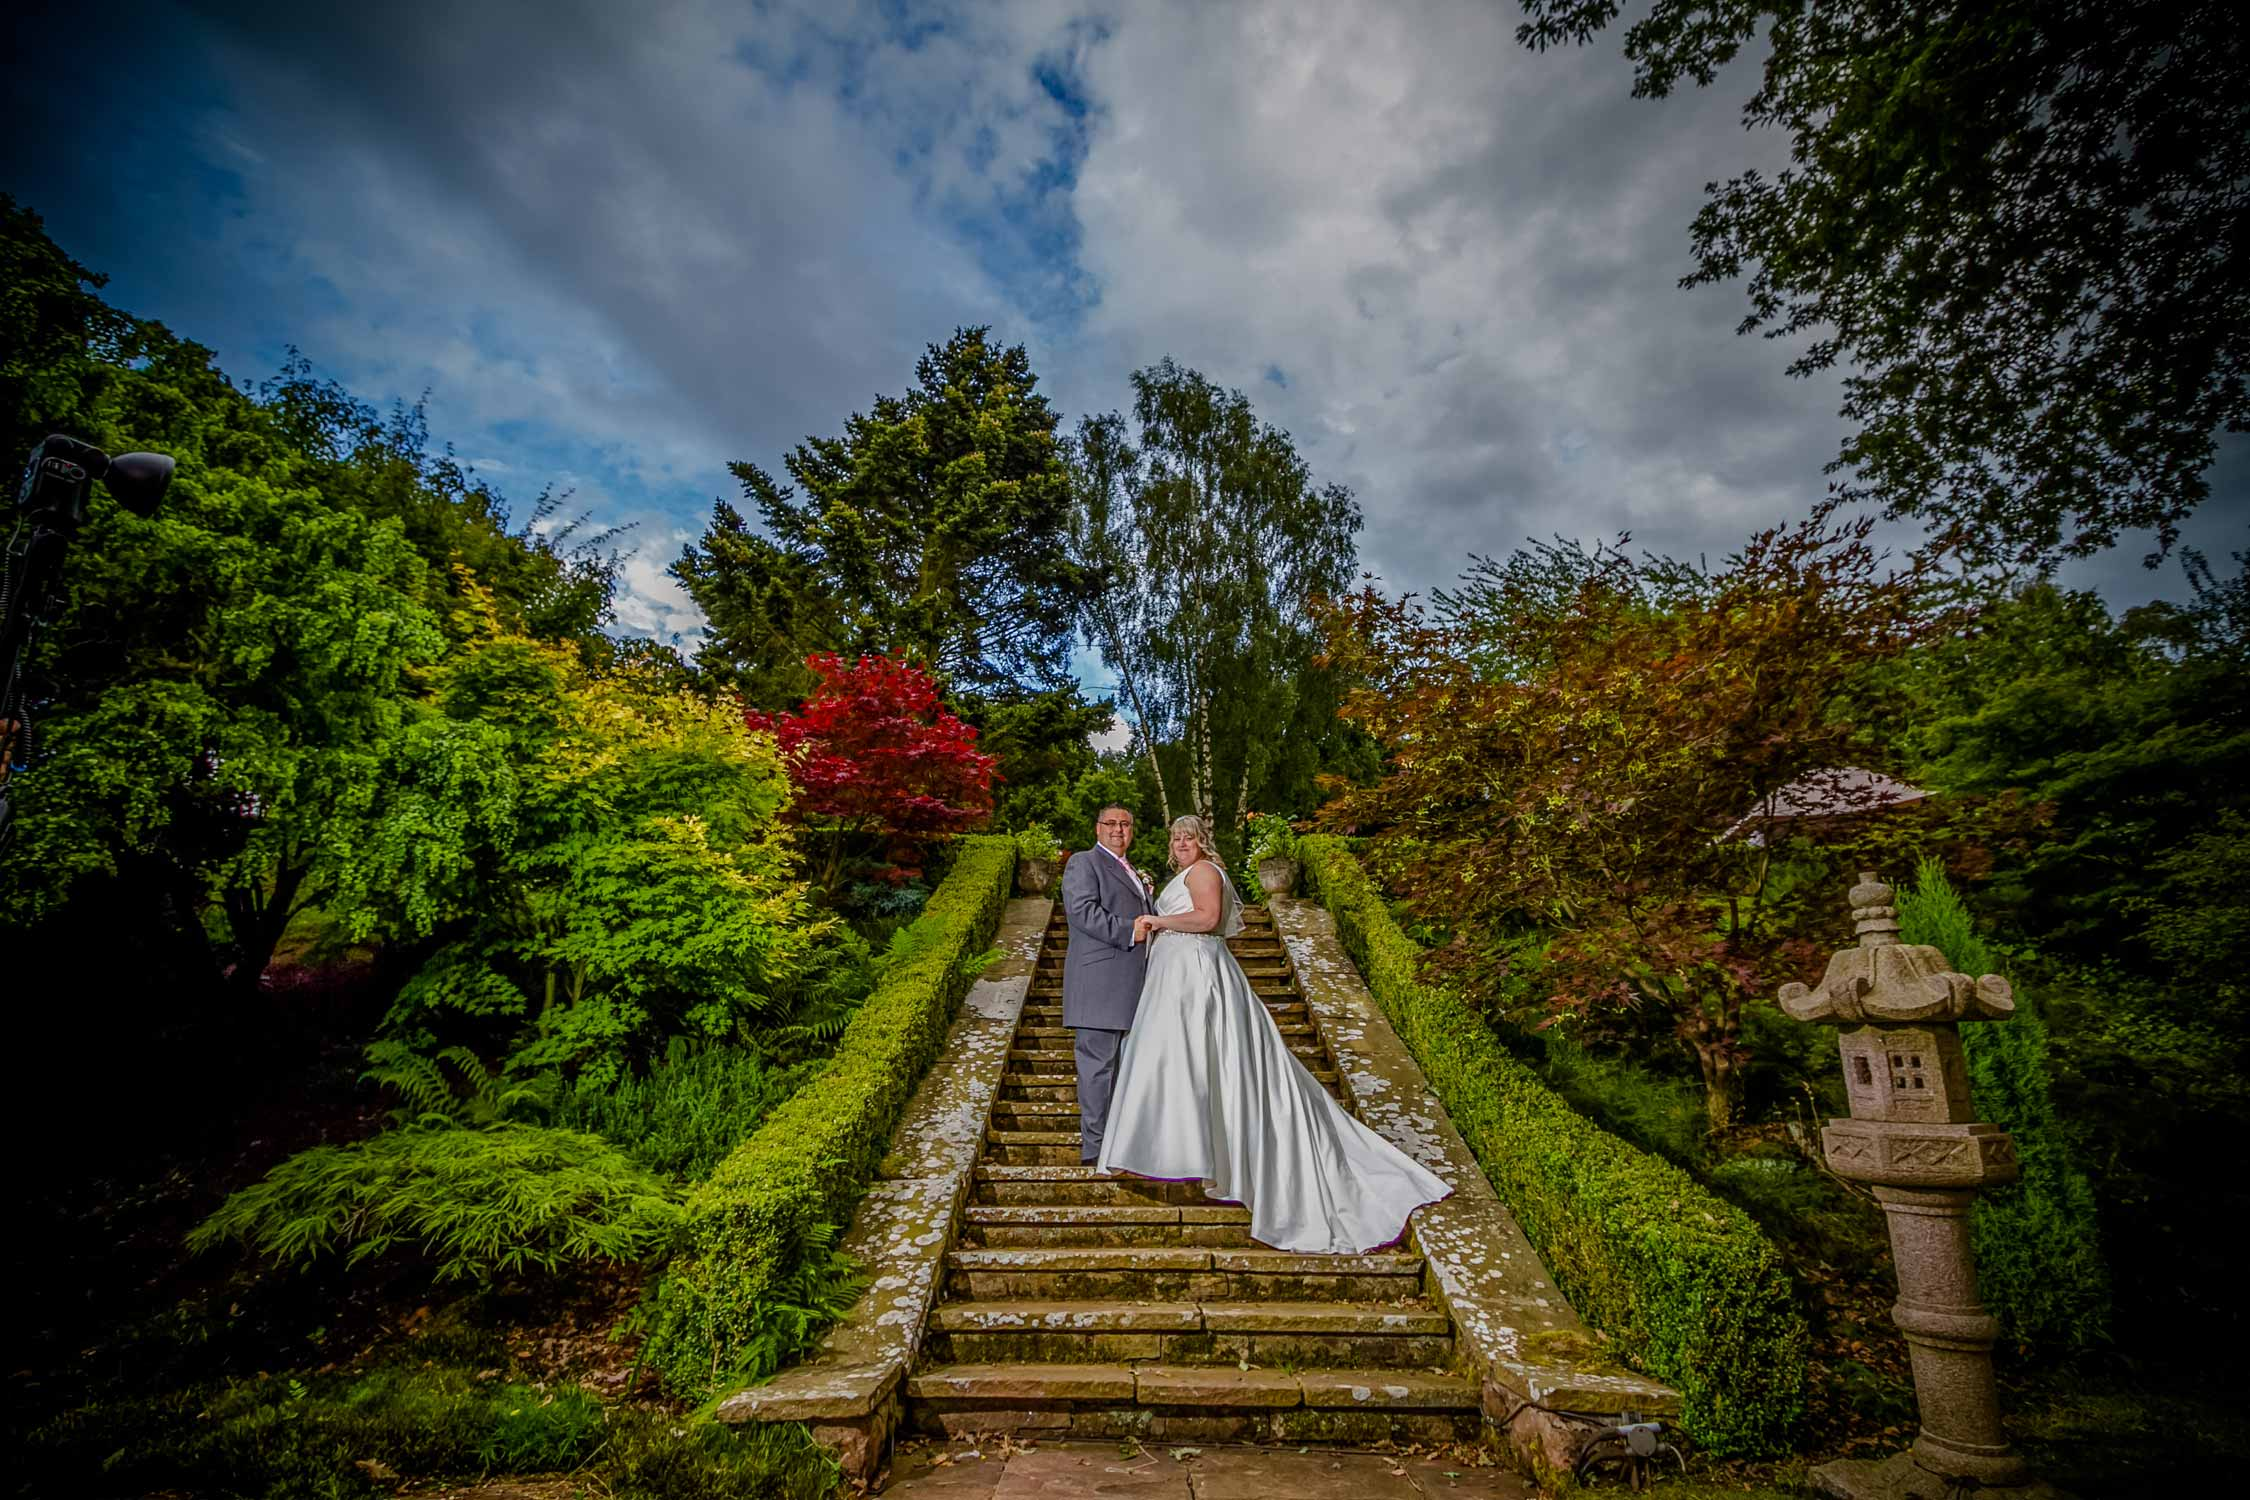 Wedding Photography in Cheshire from Kim Shaw Photography